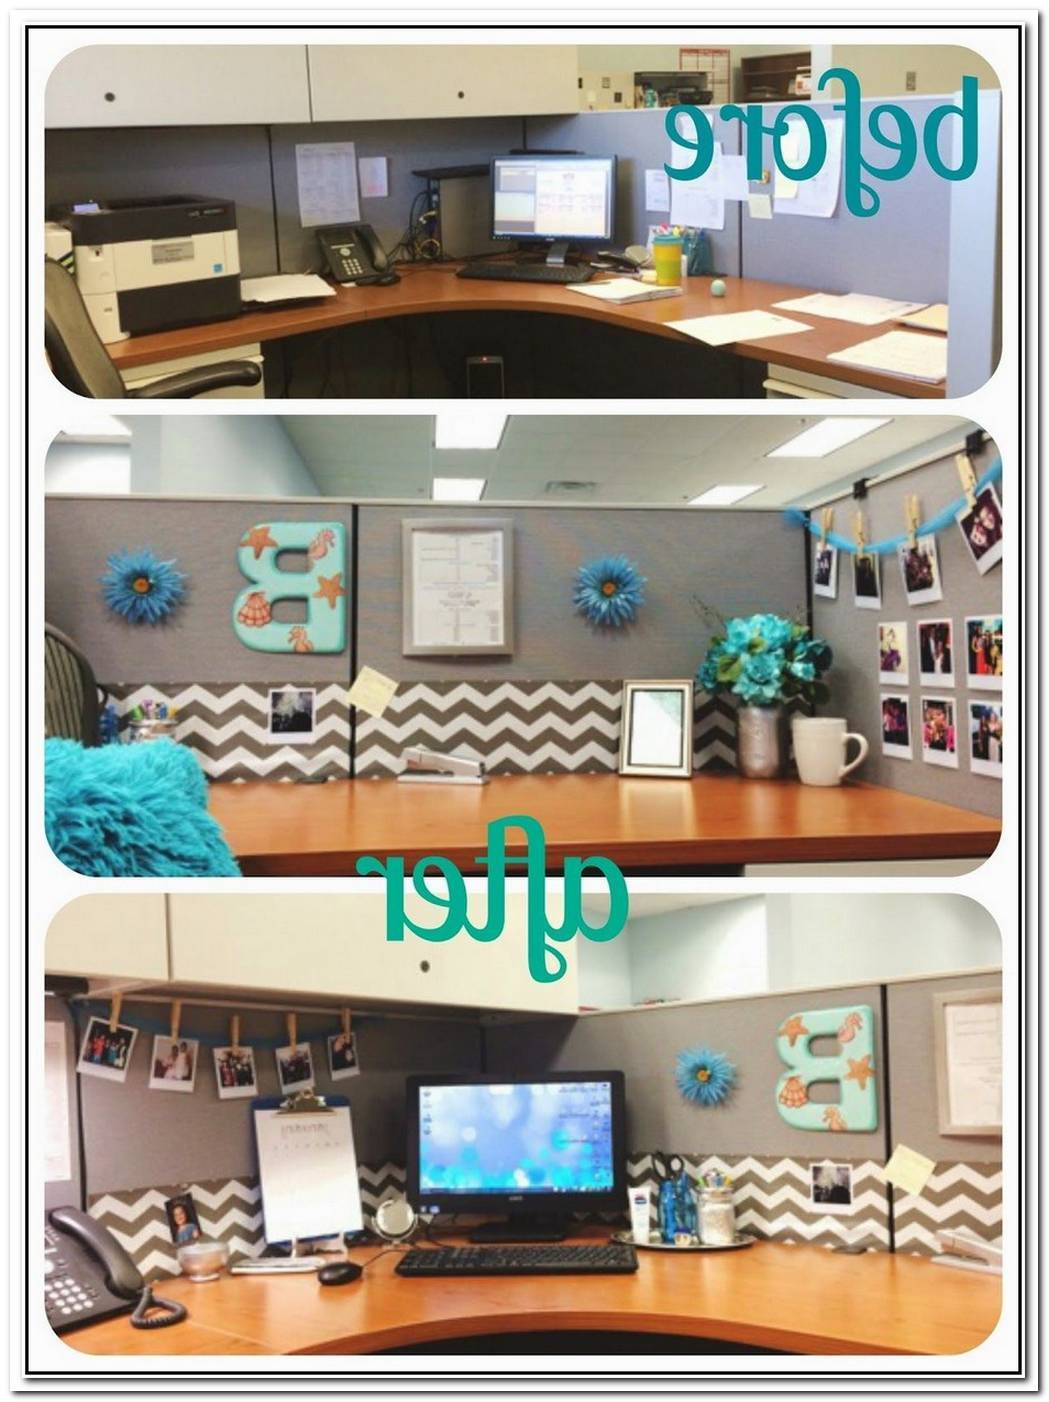 30 Decor Ideas To Make Your Cubicle Feel More Like Home